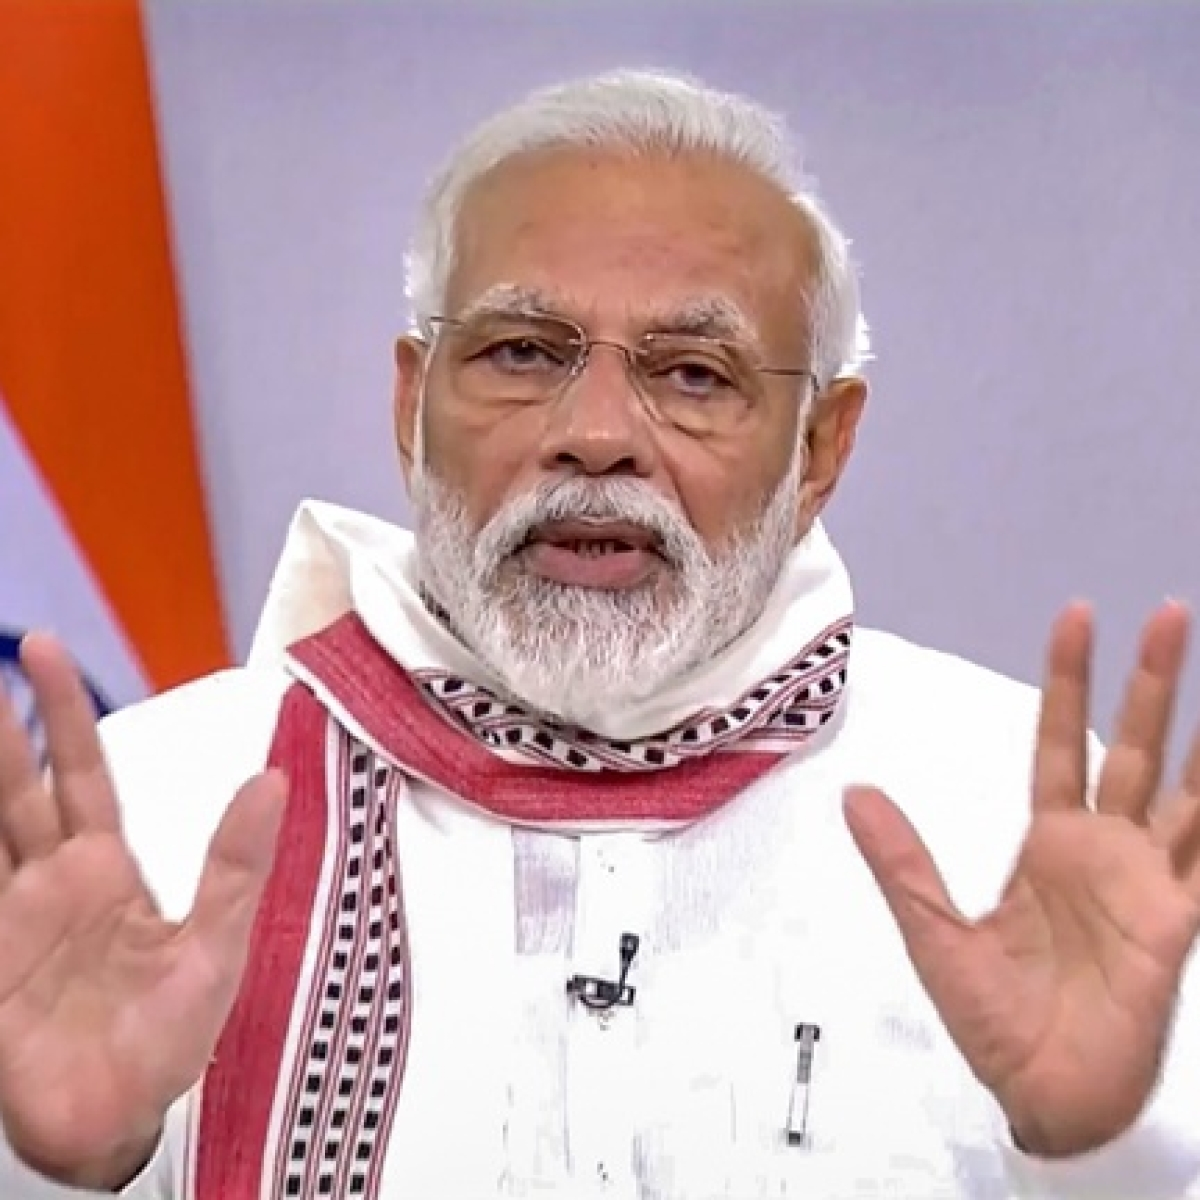 International Yoga Day: This day is a day of solidarity and universal brotherhood, says PM Modi